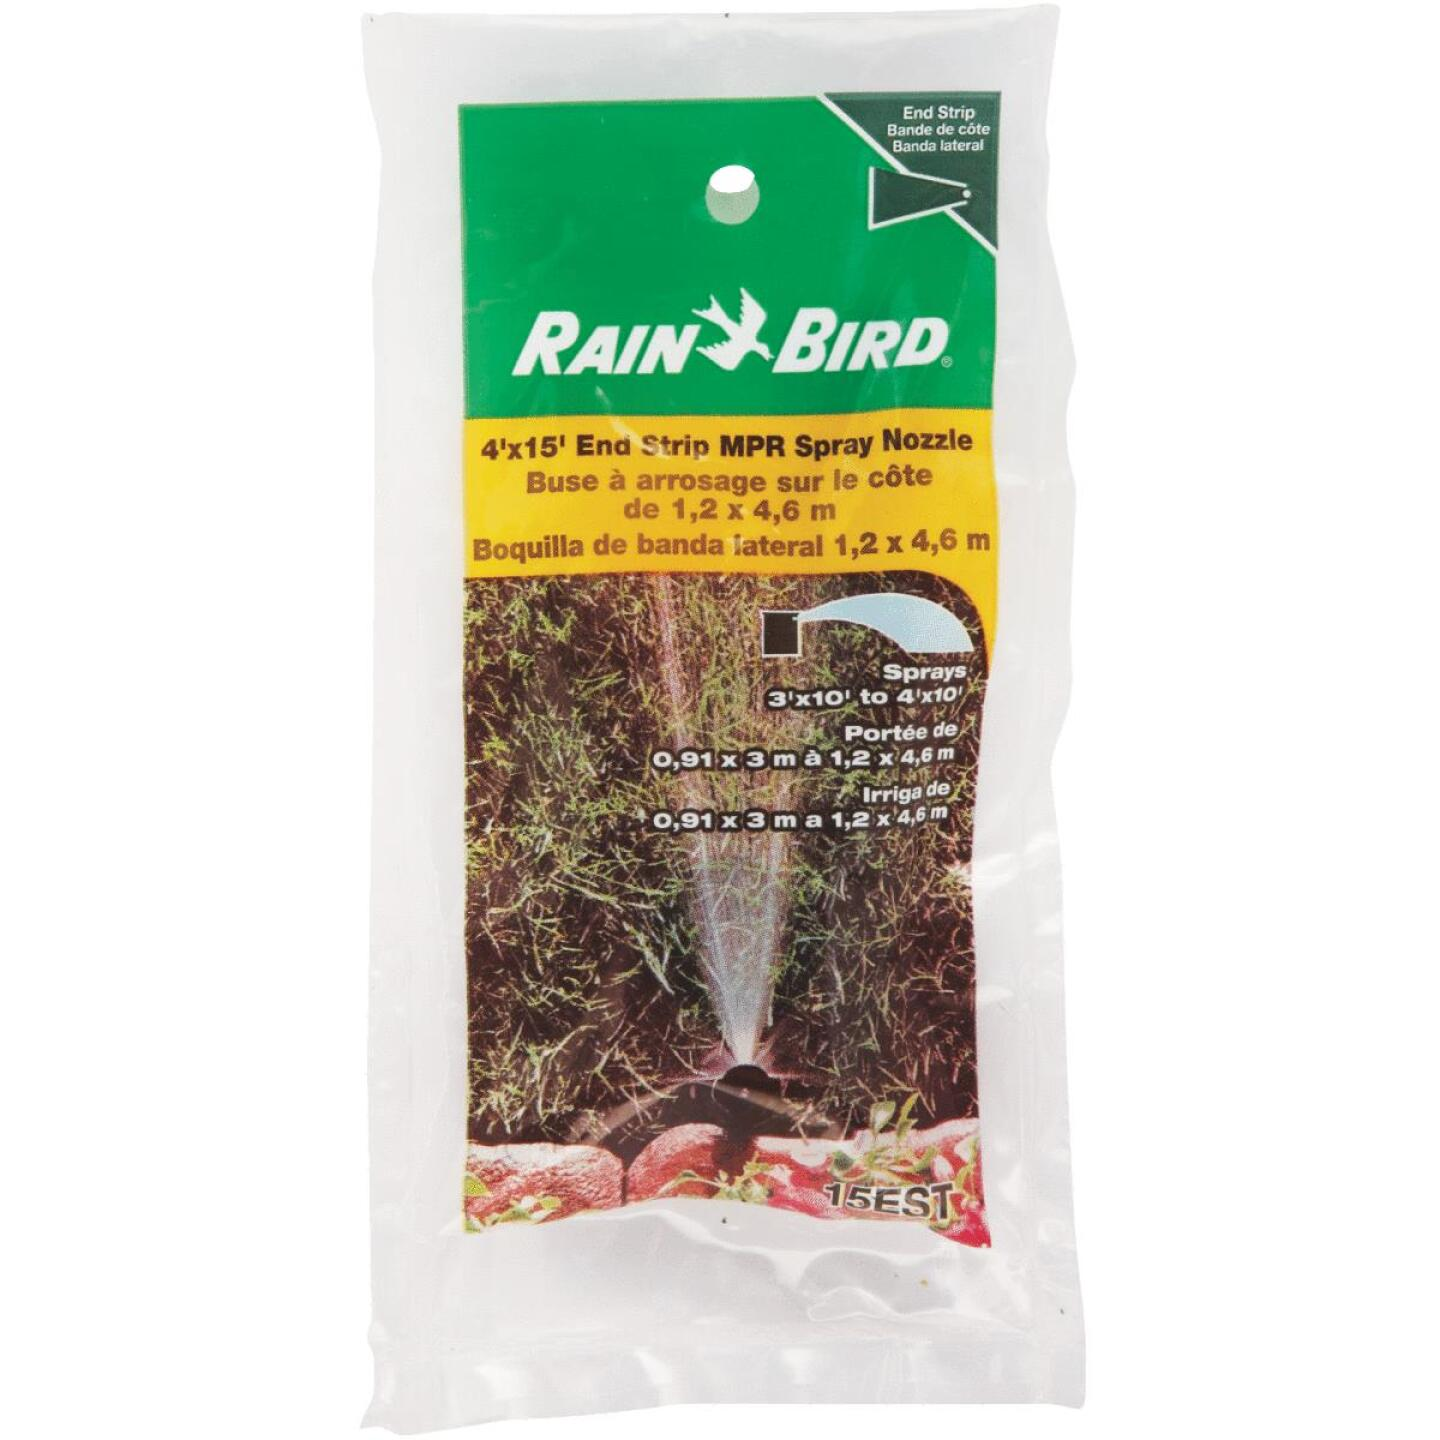 Rain Bird End Strip Plastic Spray Head Nozzle Image 1